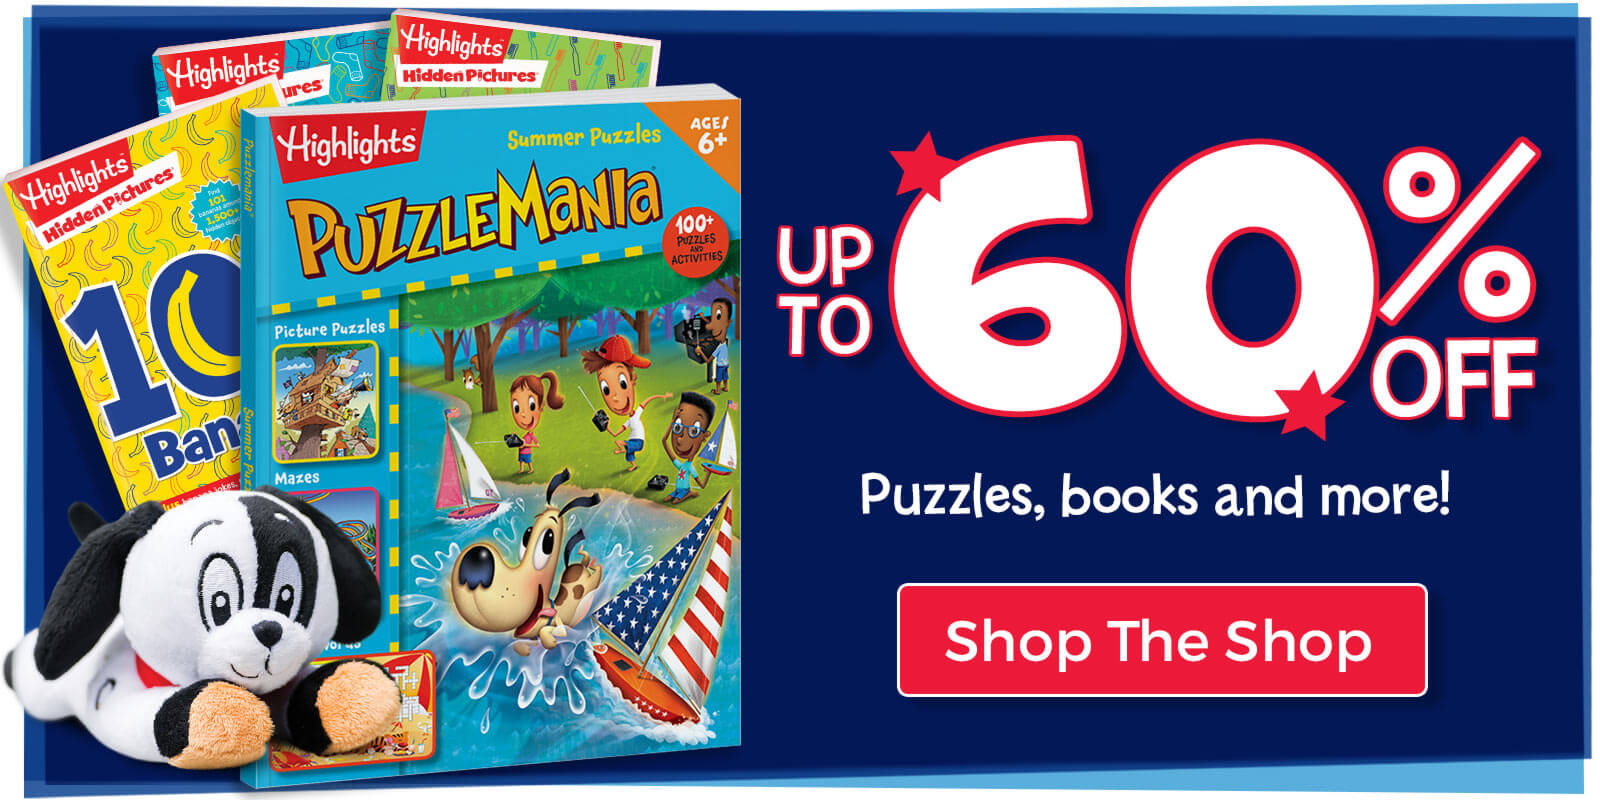 Up to 60% off puzzles, book and more